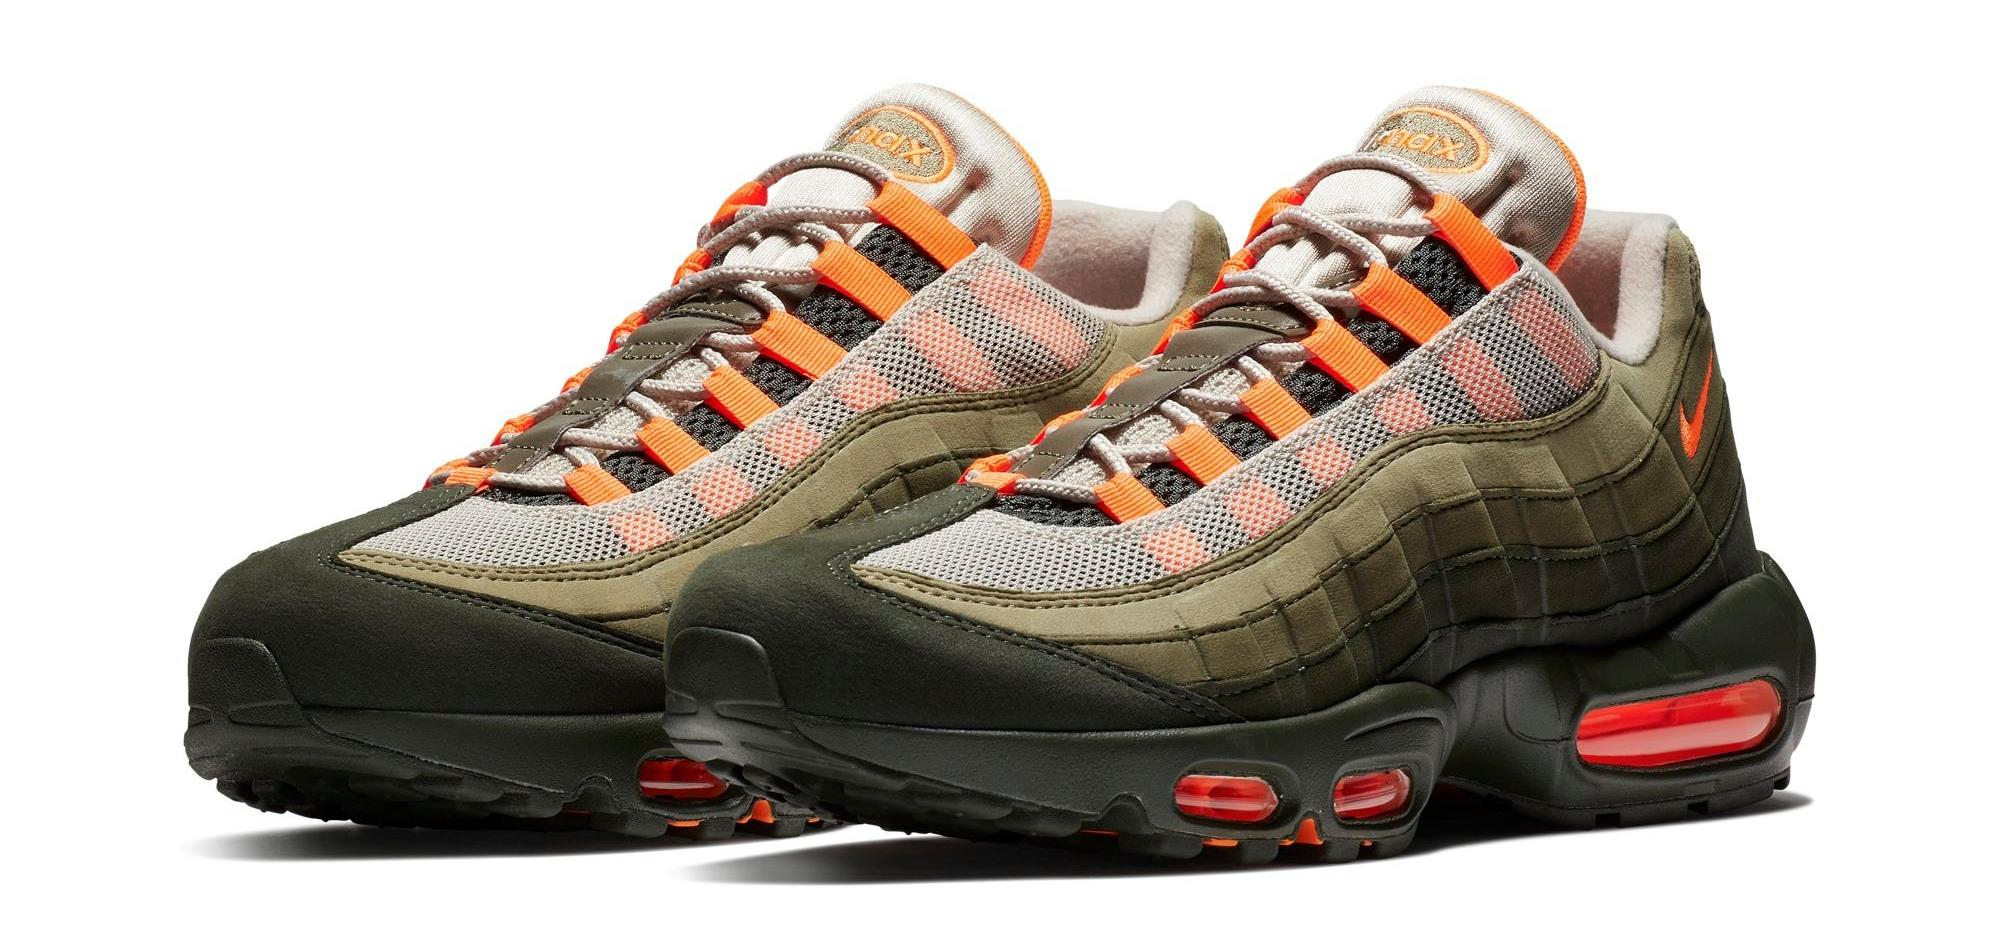 Sneaker Release Womens Nike Air Max 95 Neutral Olive Total Orange